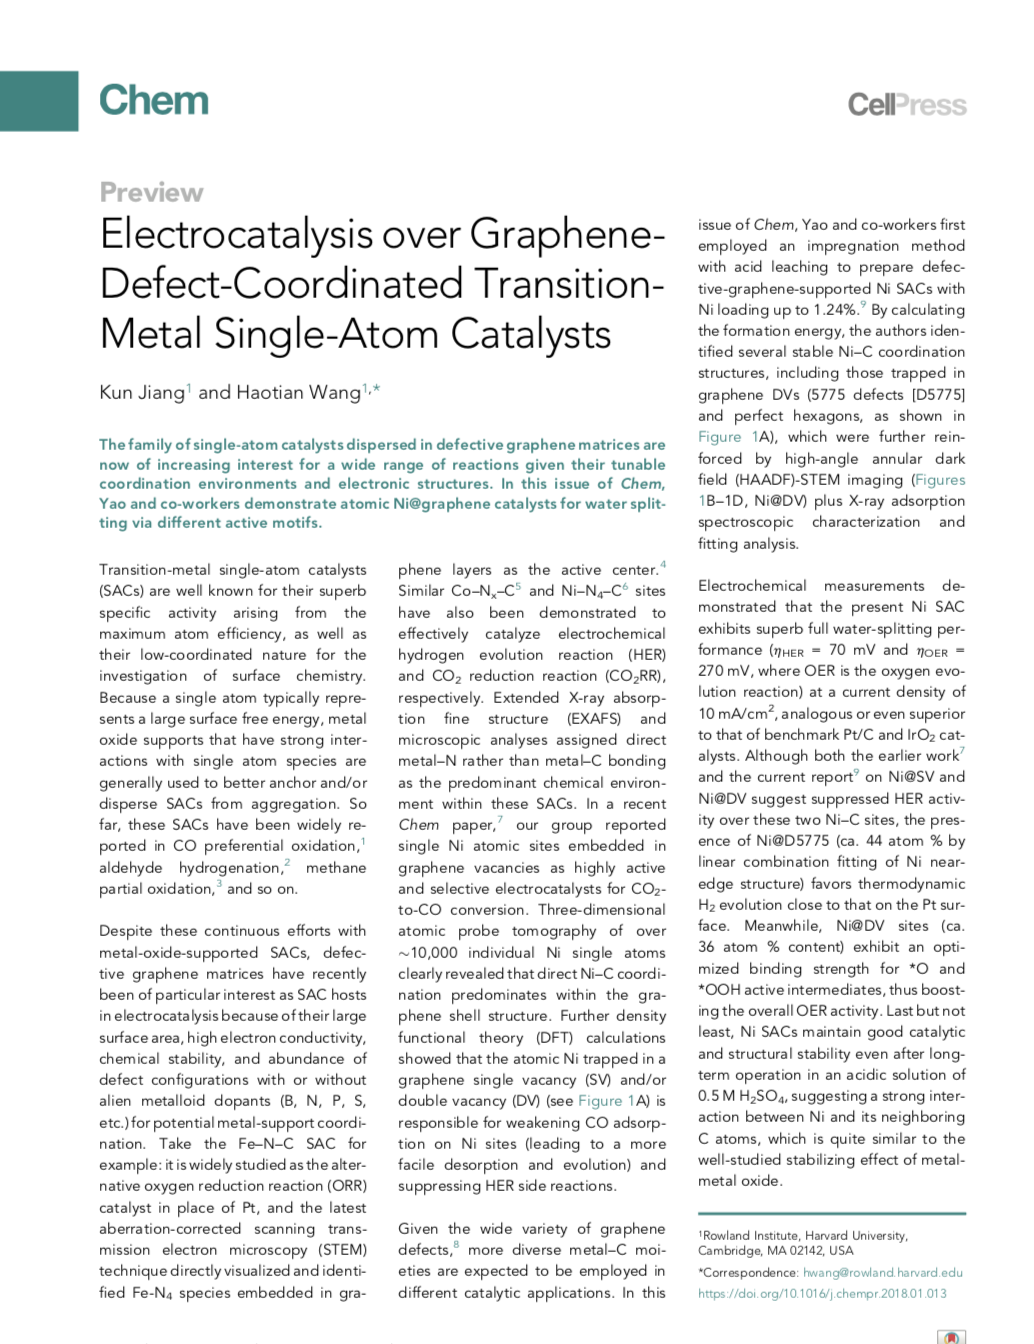 Transition-Metal Single Atoms in a Graphene Shell as Active Centers for Highly Efficient Artificial